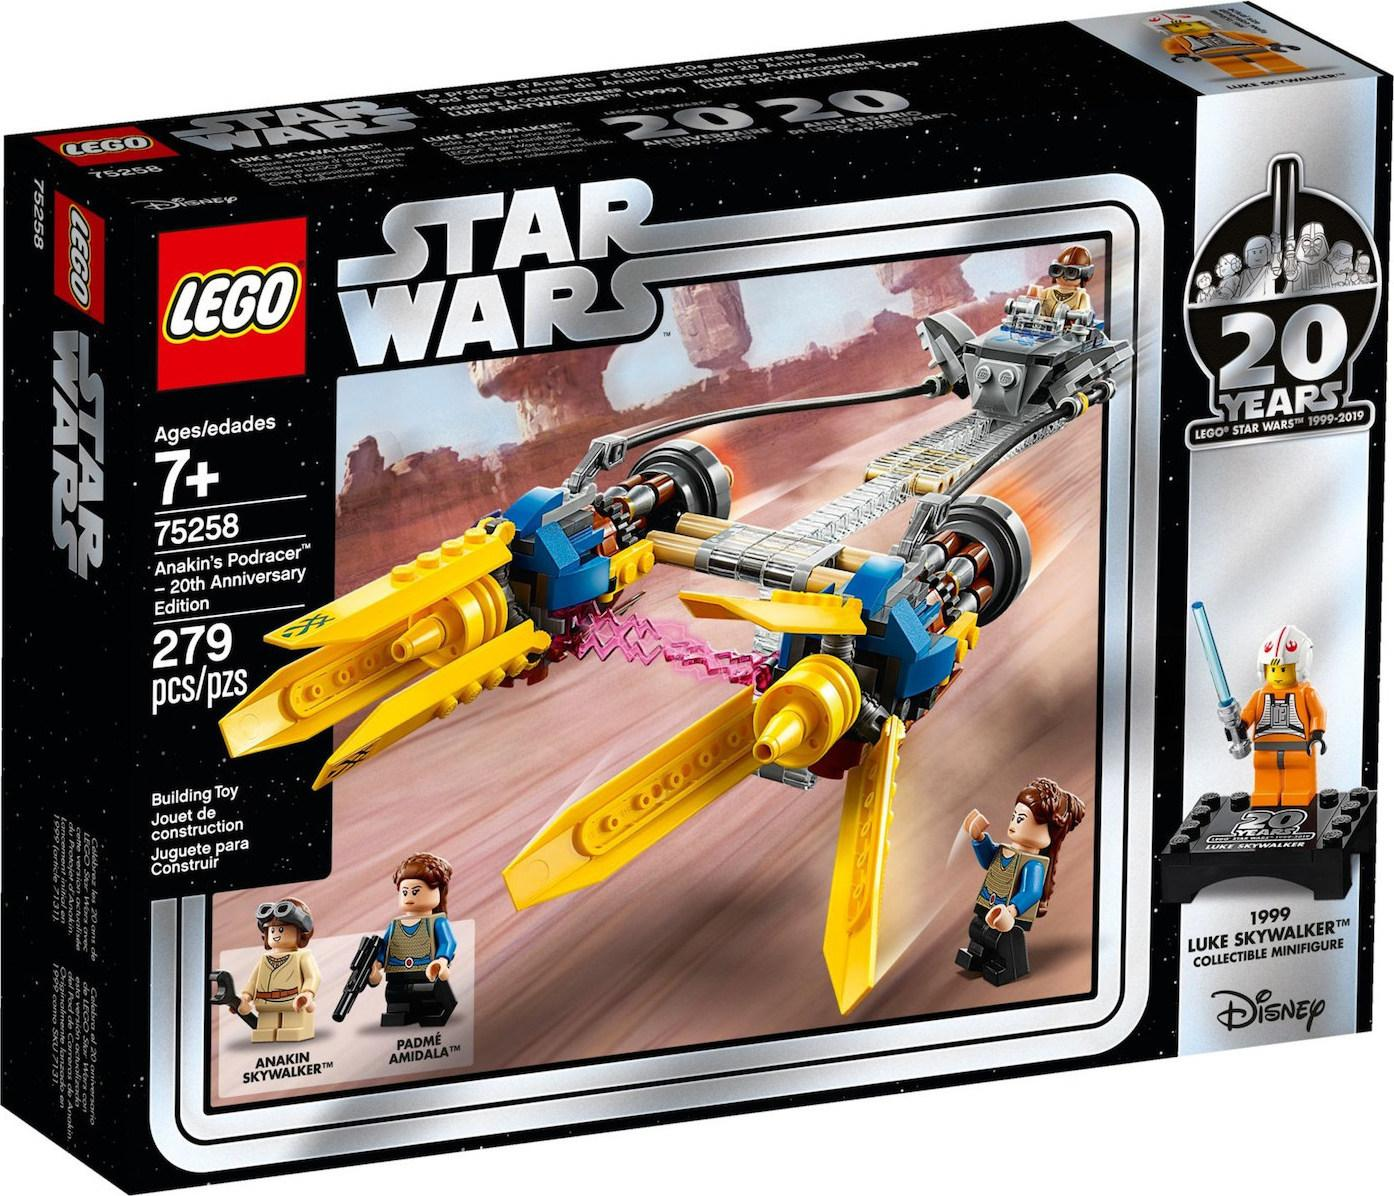 Lego Star Wars Anakins Podracer -20th Anniversary edition (75258)